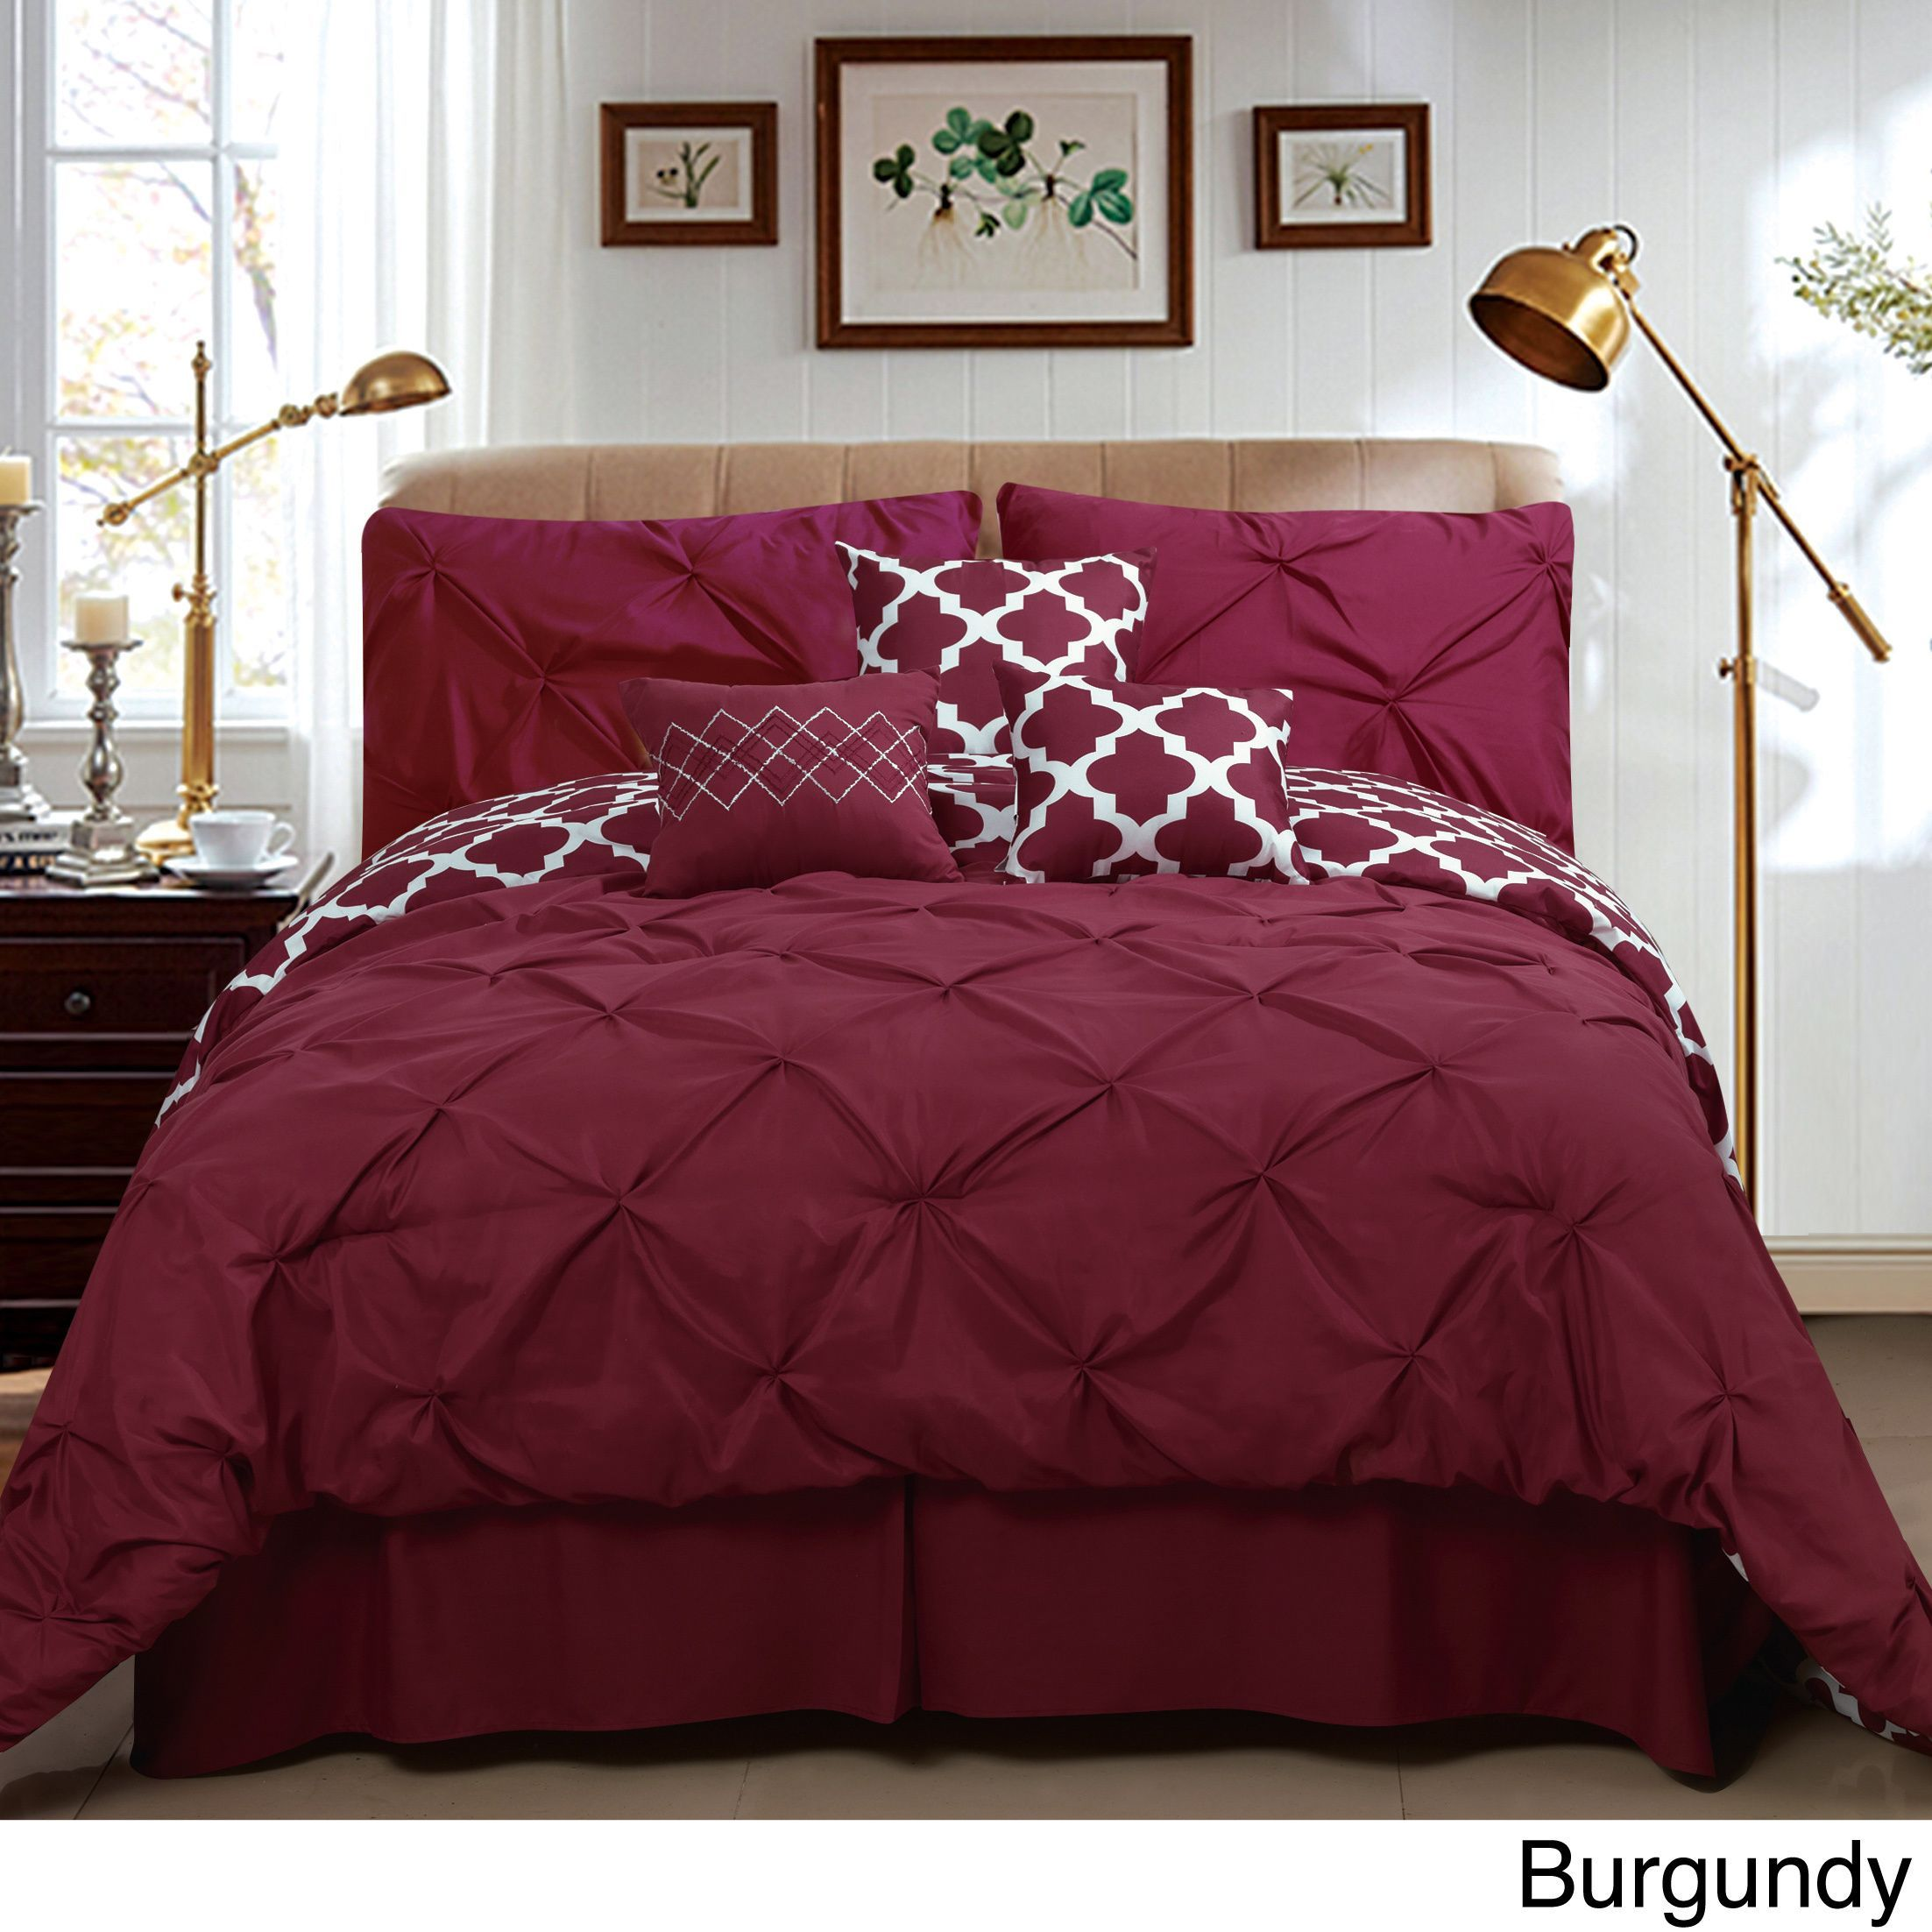 down queen cotton size patterns king comforters solid quilts color quilt fabric bedspreads comforter twin